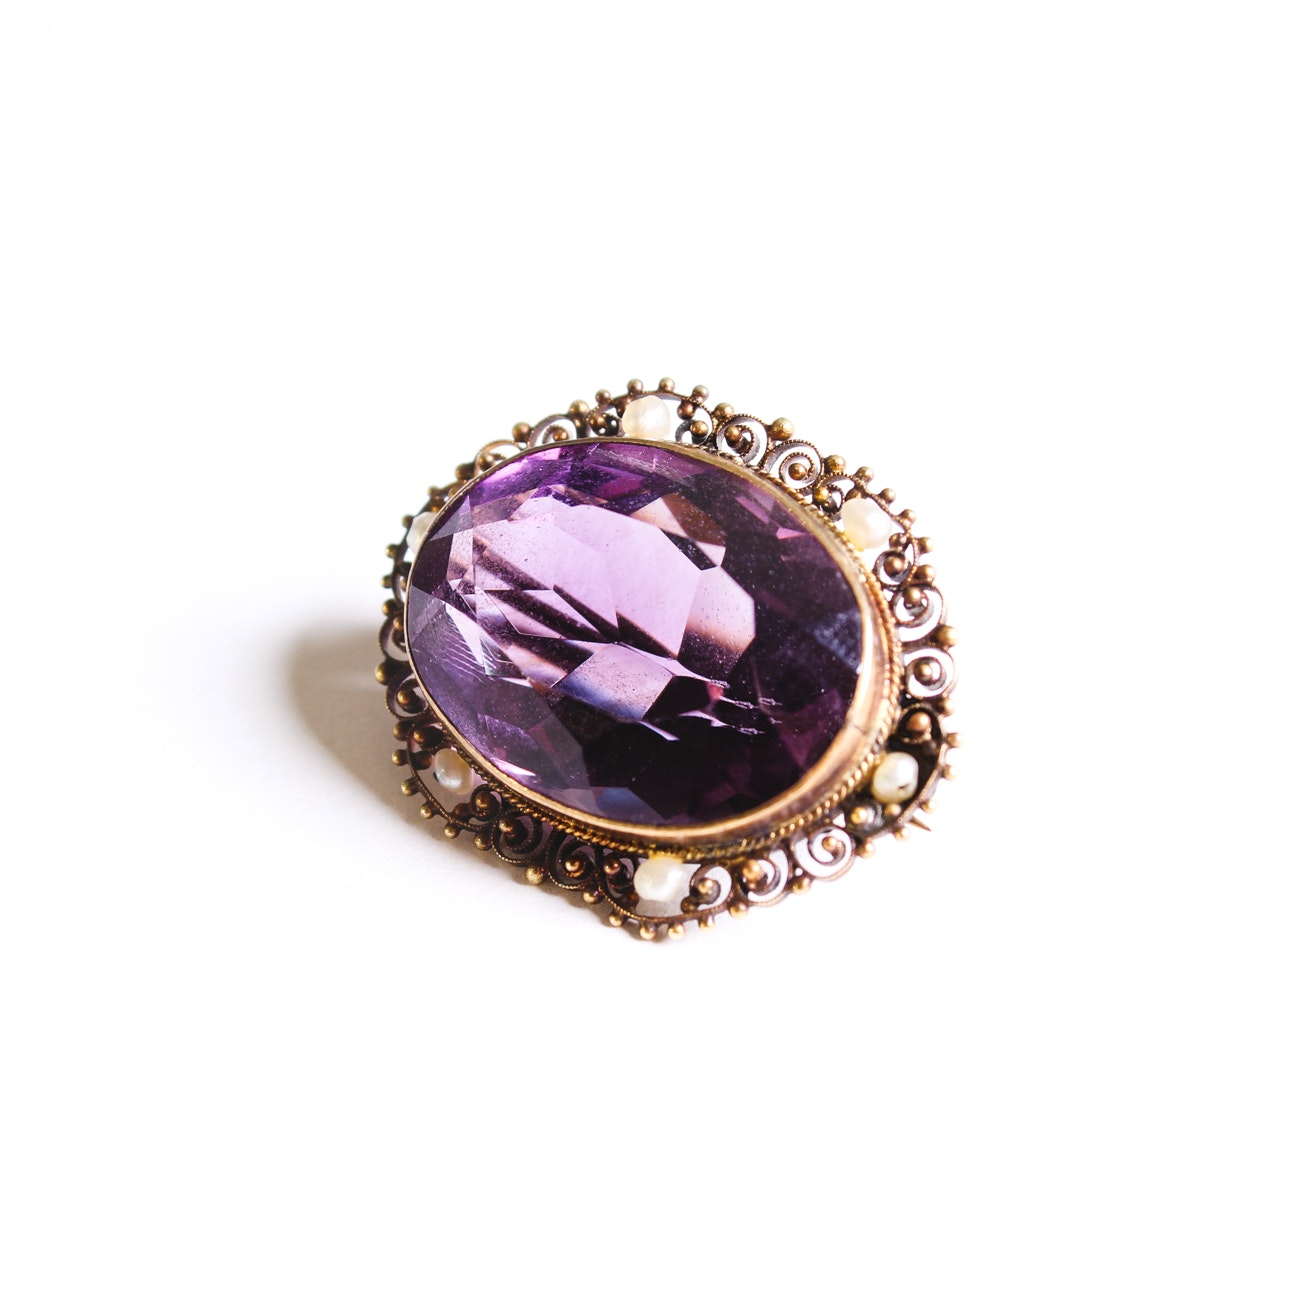 Early 20th Century 14K Yellow Gold 25.28 Carat Amethyst and Seed Pearl Brooch